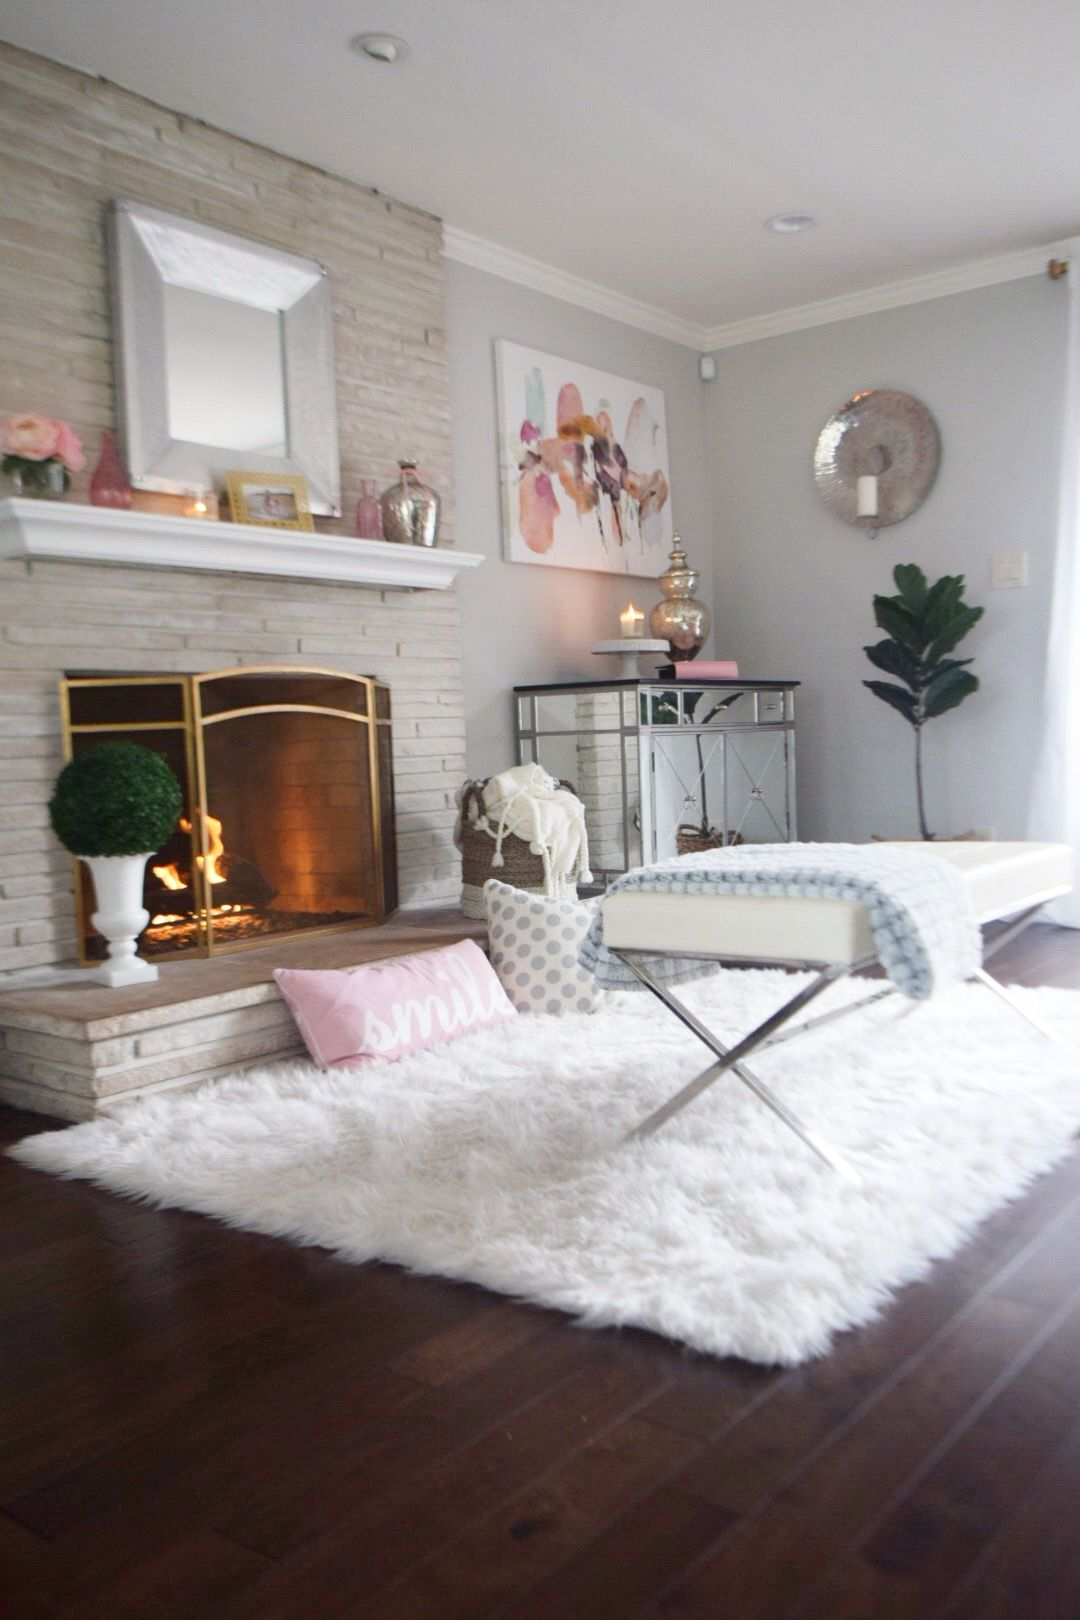 A faux fur rug, cozy throws and pillows make for the perfect spot